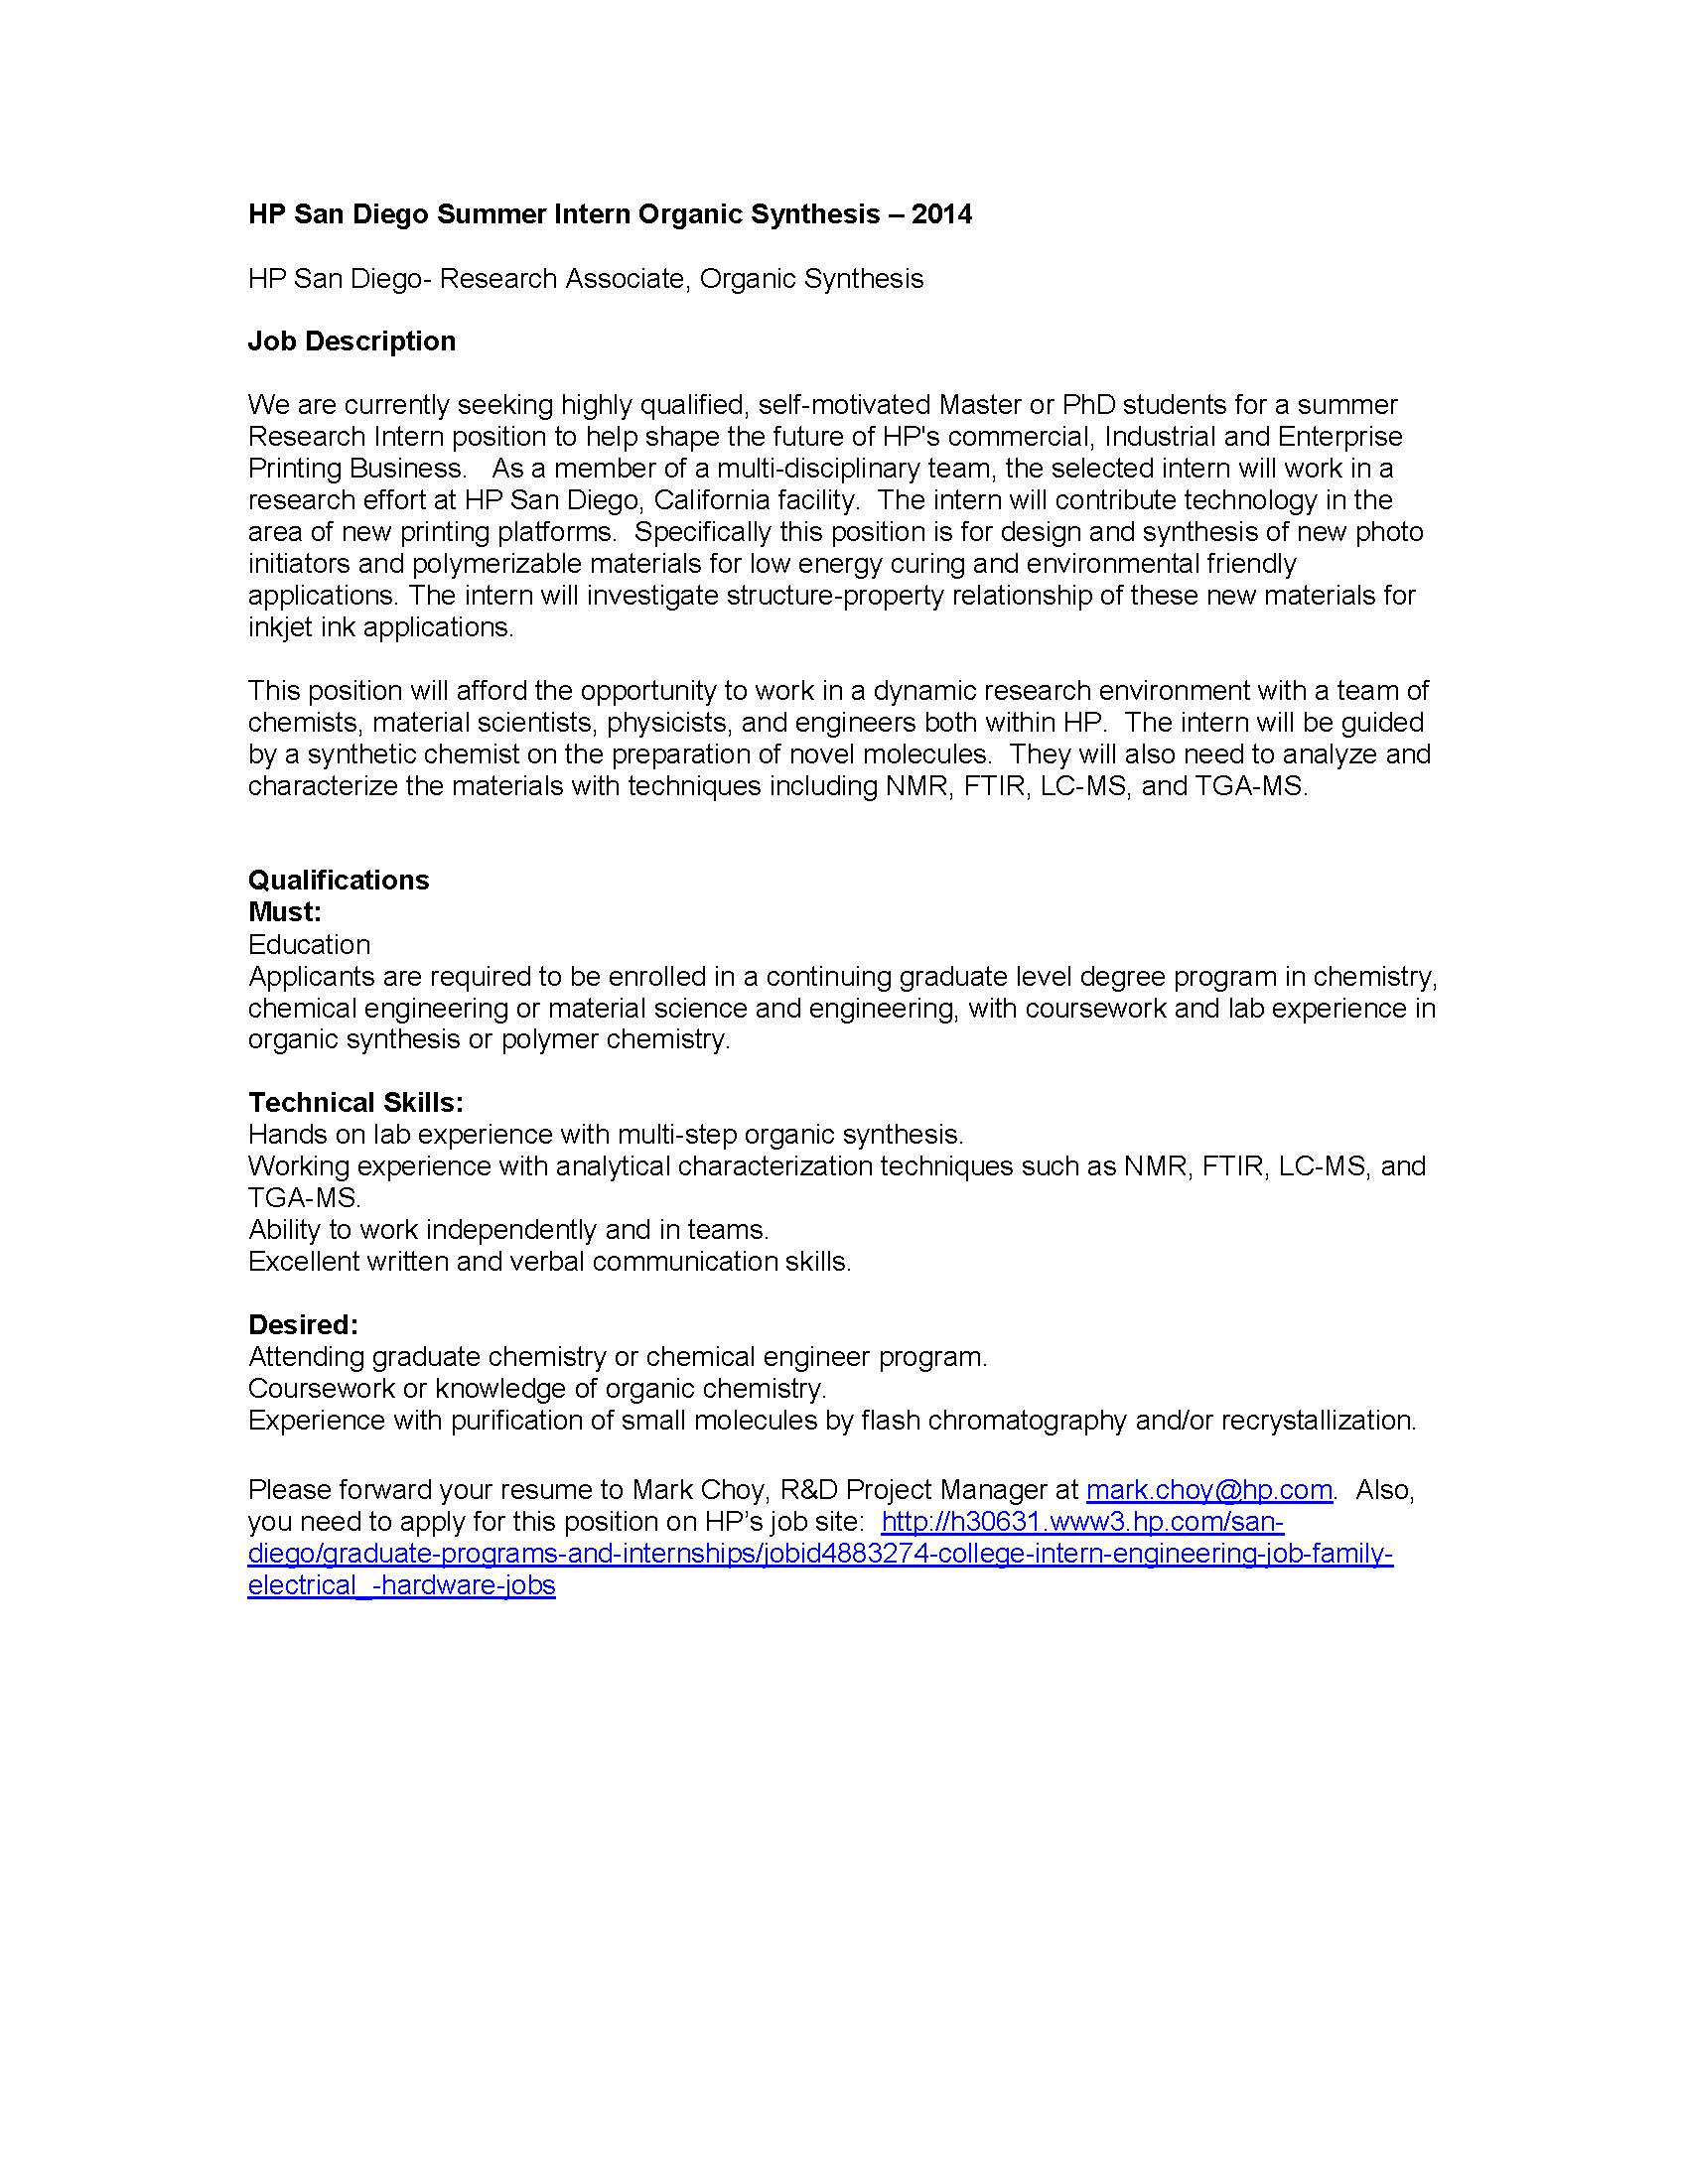 Cover letter for internship chemical engineering